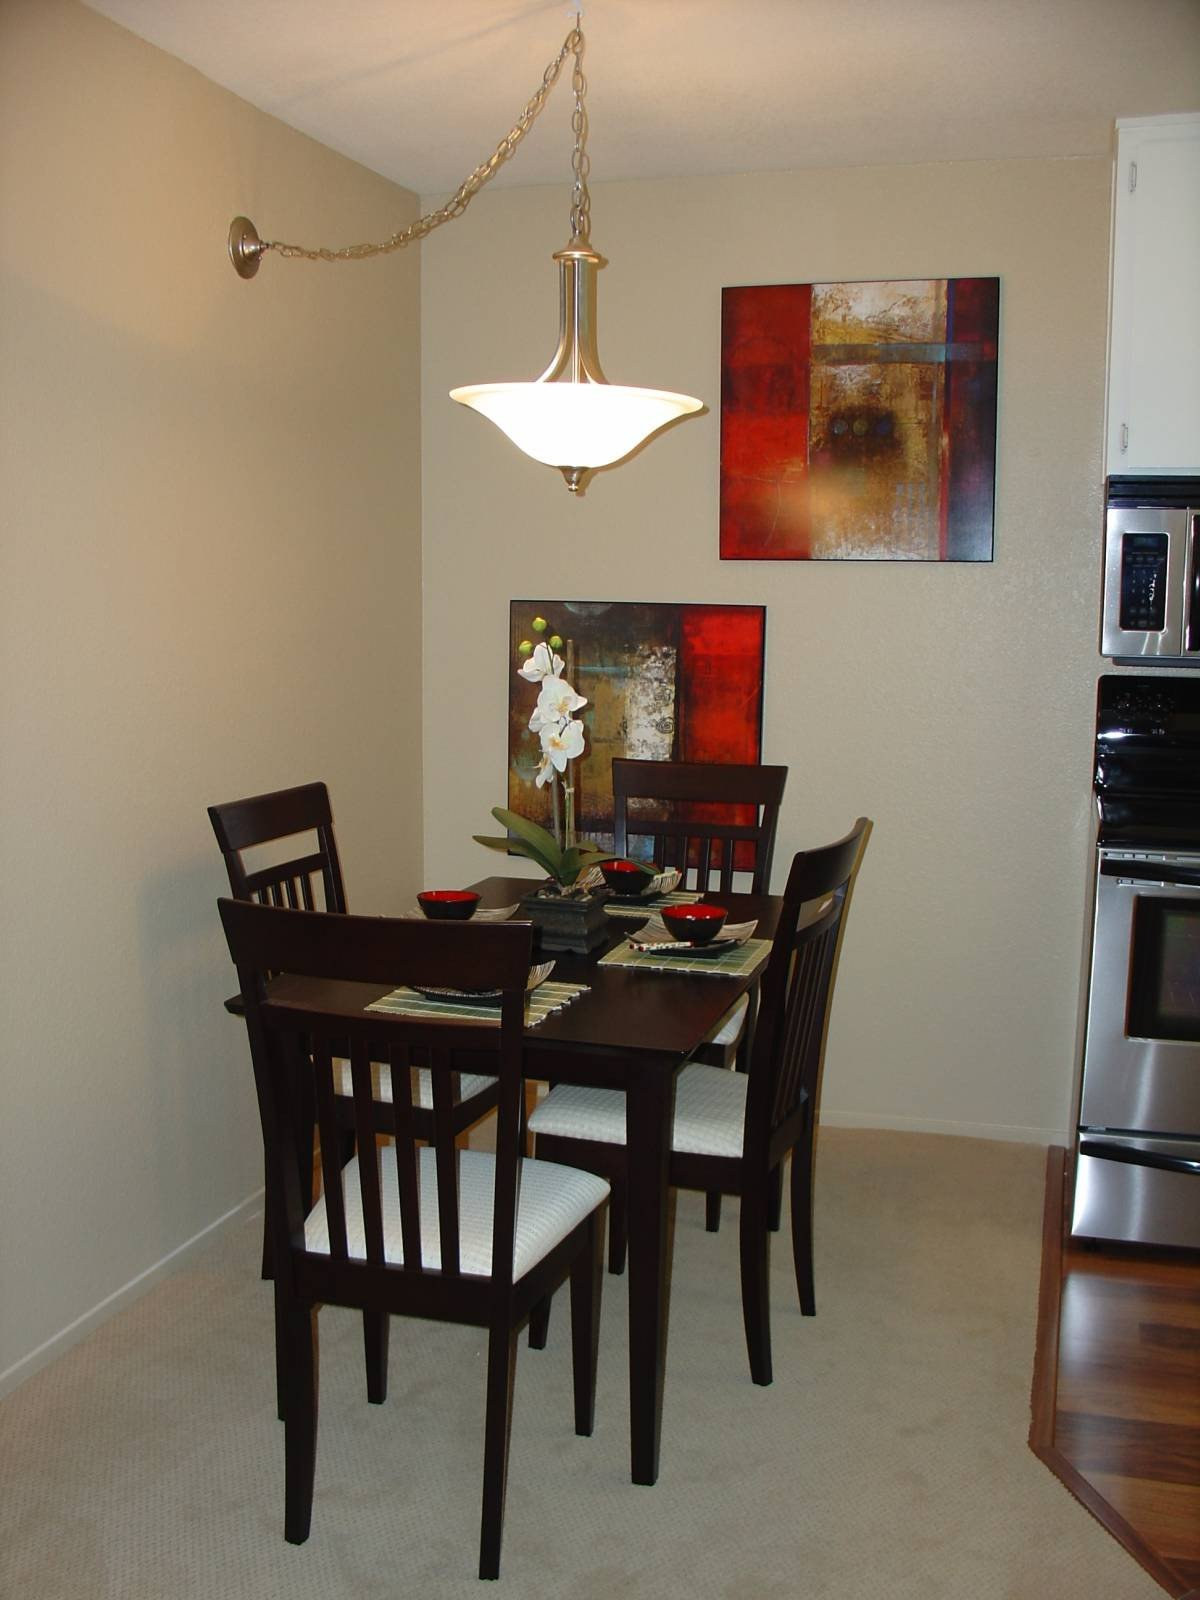 Small Dining Room Decor Ideas Beautiful How to Make Dining Room Decorating Ideas to Get Your Home Looking Great 20 Ideas Interior